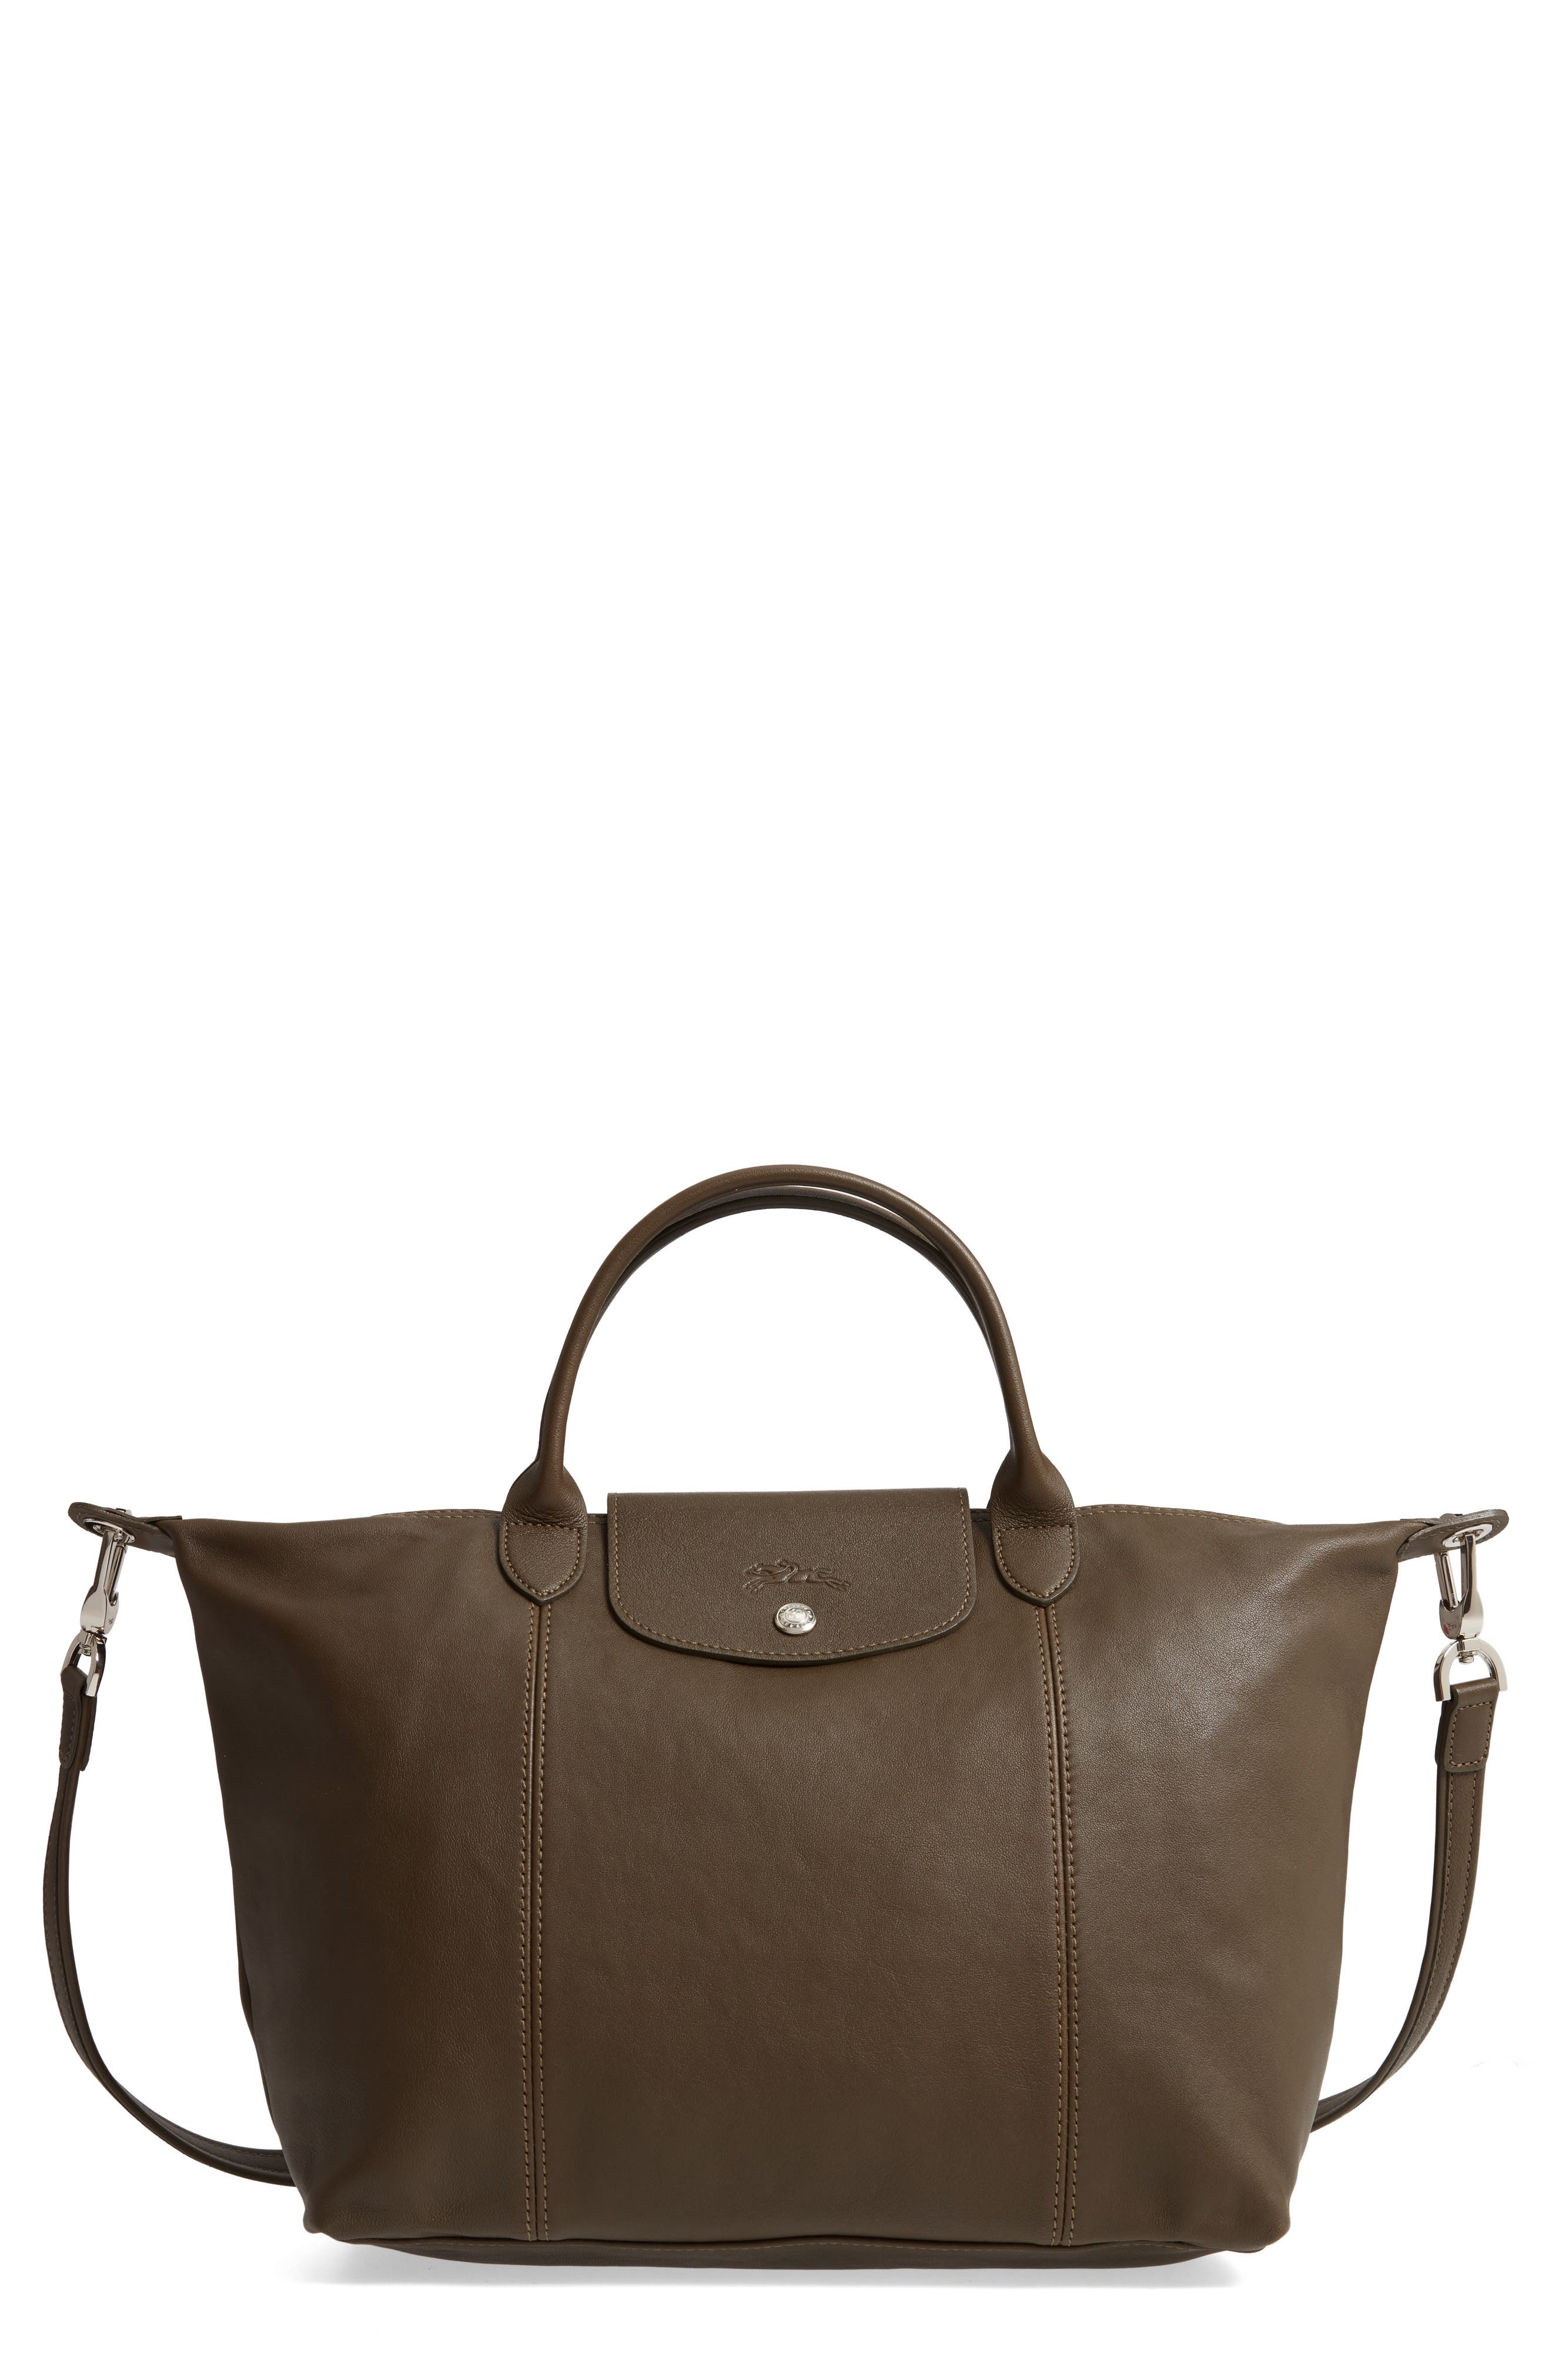 Medium 'Le Pliage Cuir' Leather Top Handle Tote,                         Main,                         color, 301